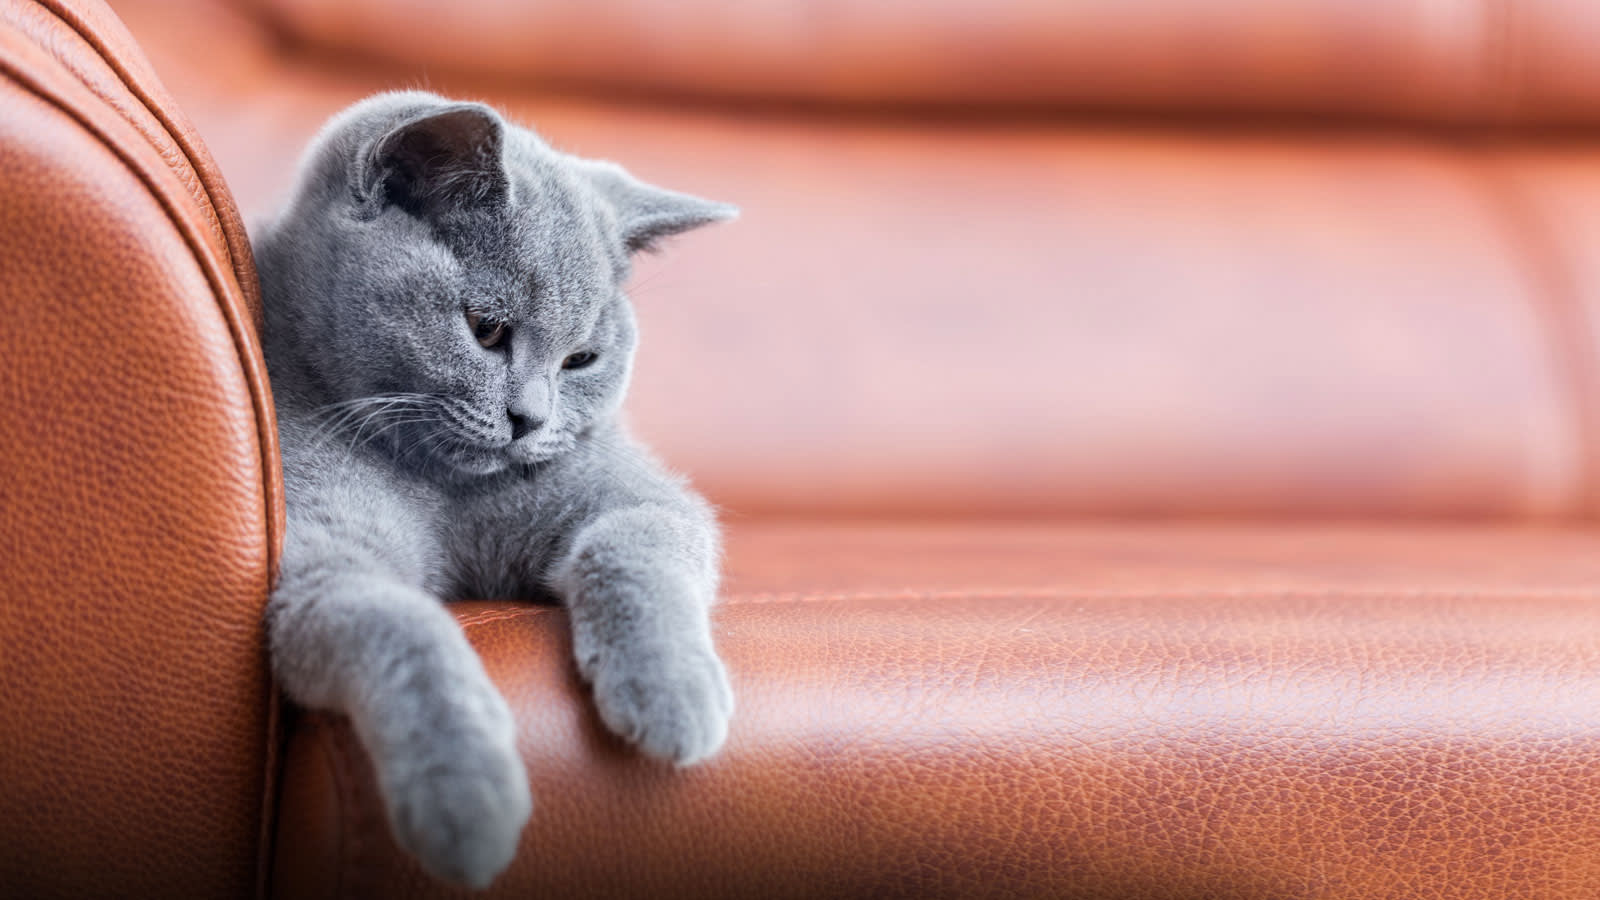 Cat sat on a brown leather sofa